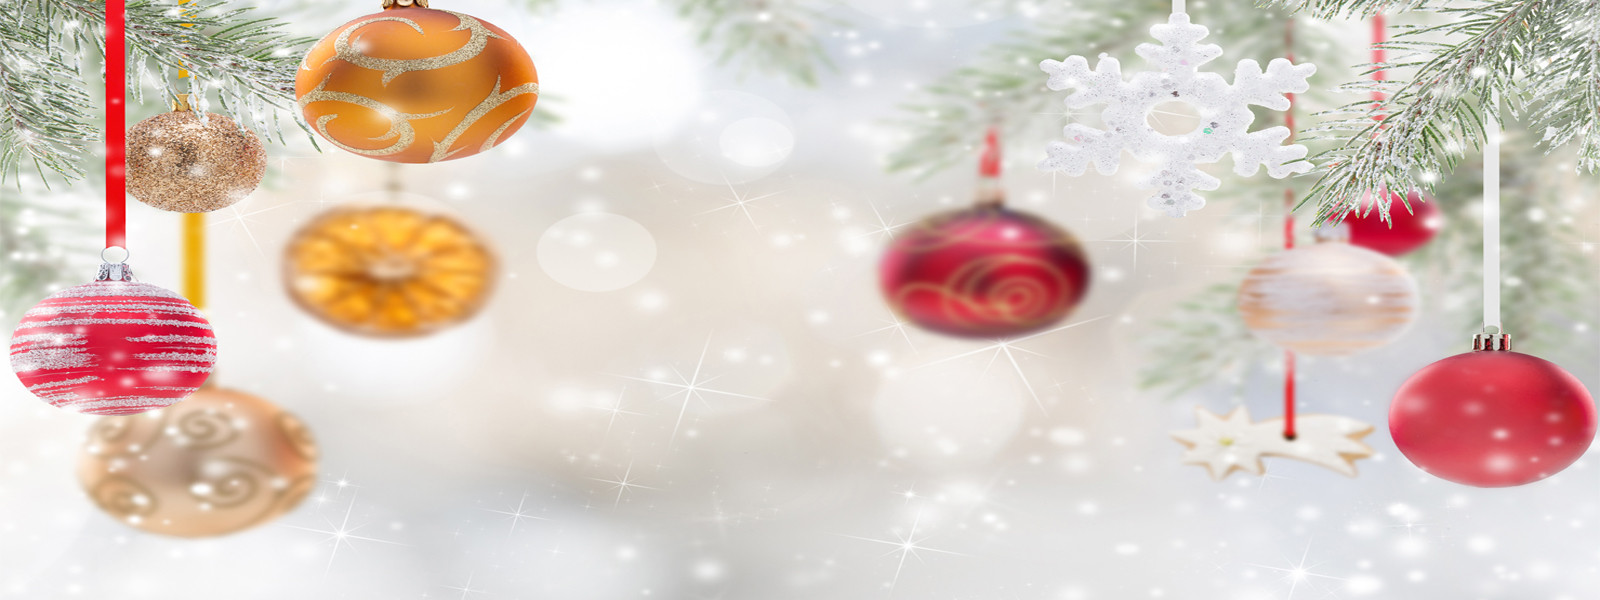 HOLIDAY DELIVERY PROMOTION 10% OFF ON ORDERS ABOVE $50 12 NOON TO 9 PM PROMOCODE: ORDERDIRECT